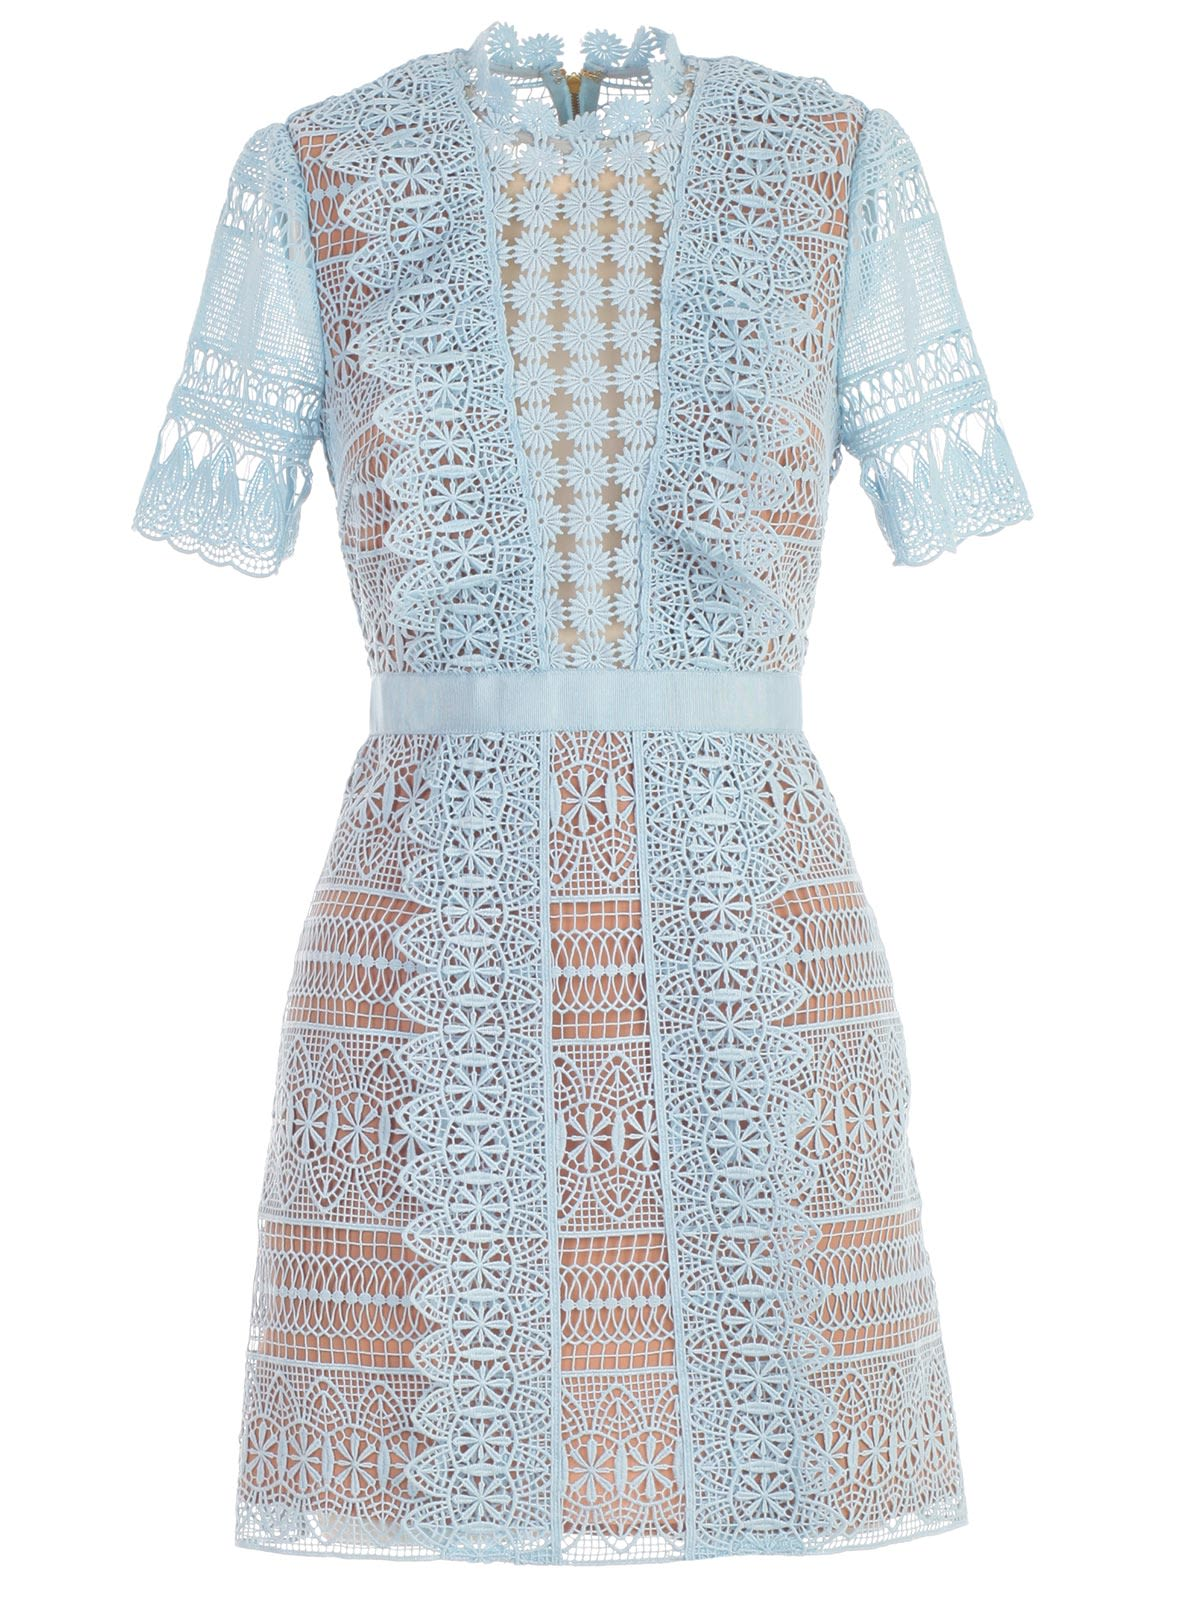 Dress Mini Blue Spiral Panel Lace